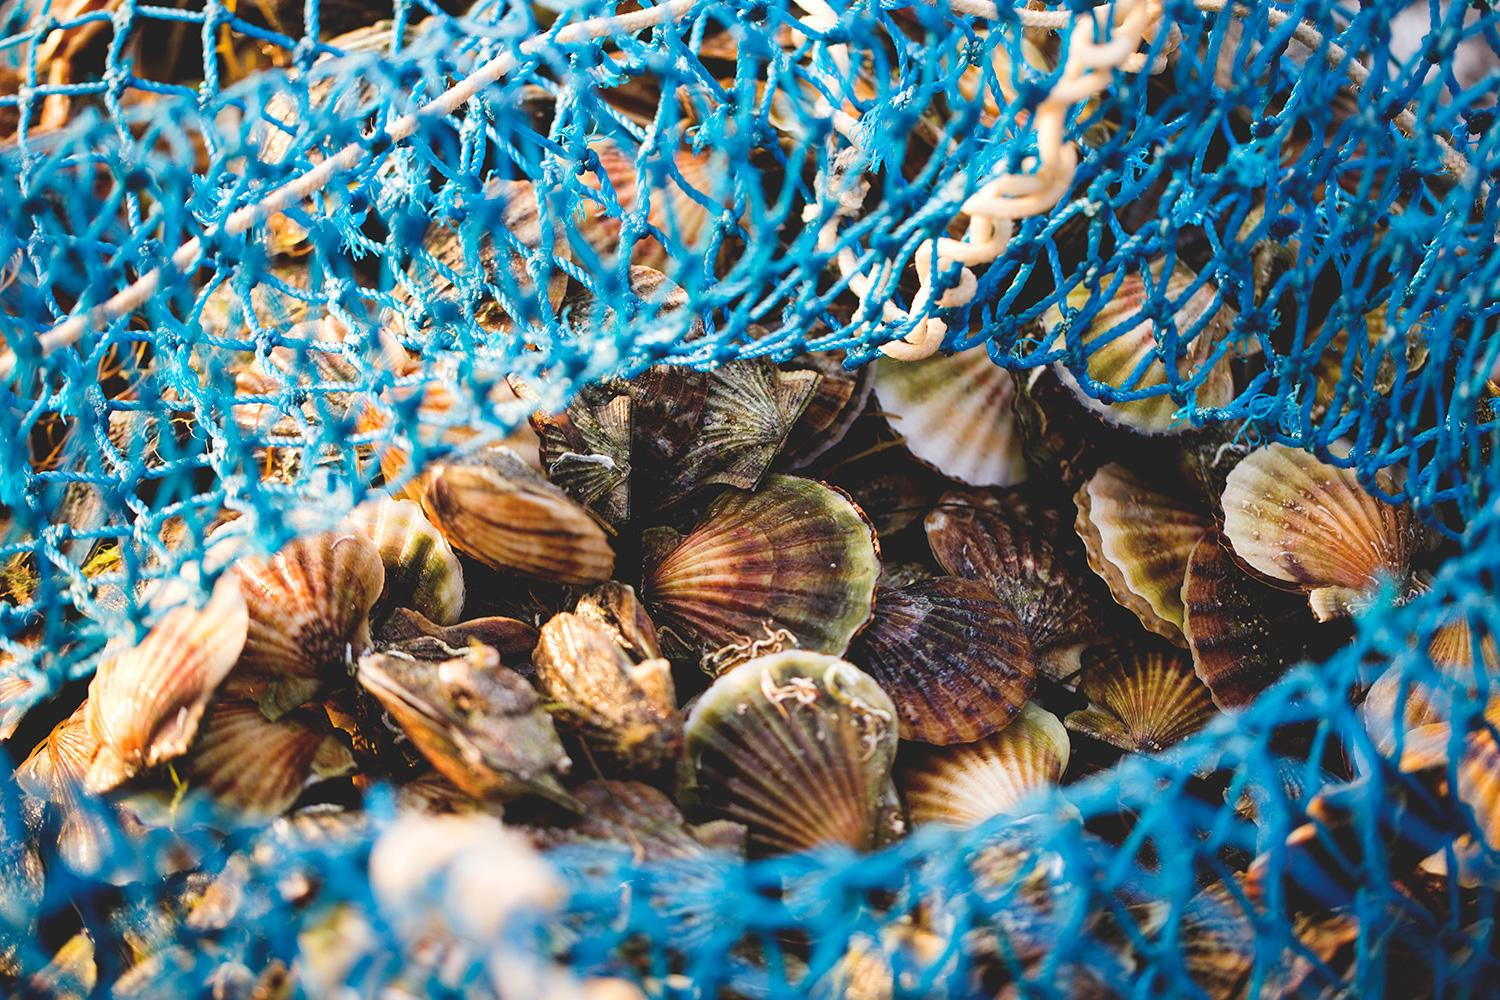 Increasing acidity in sea water can prevent larvae of scallops and other bivalves from forming the calcium carbonate shells required for their development to maturity.